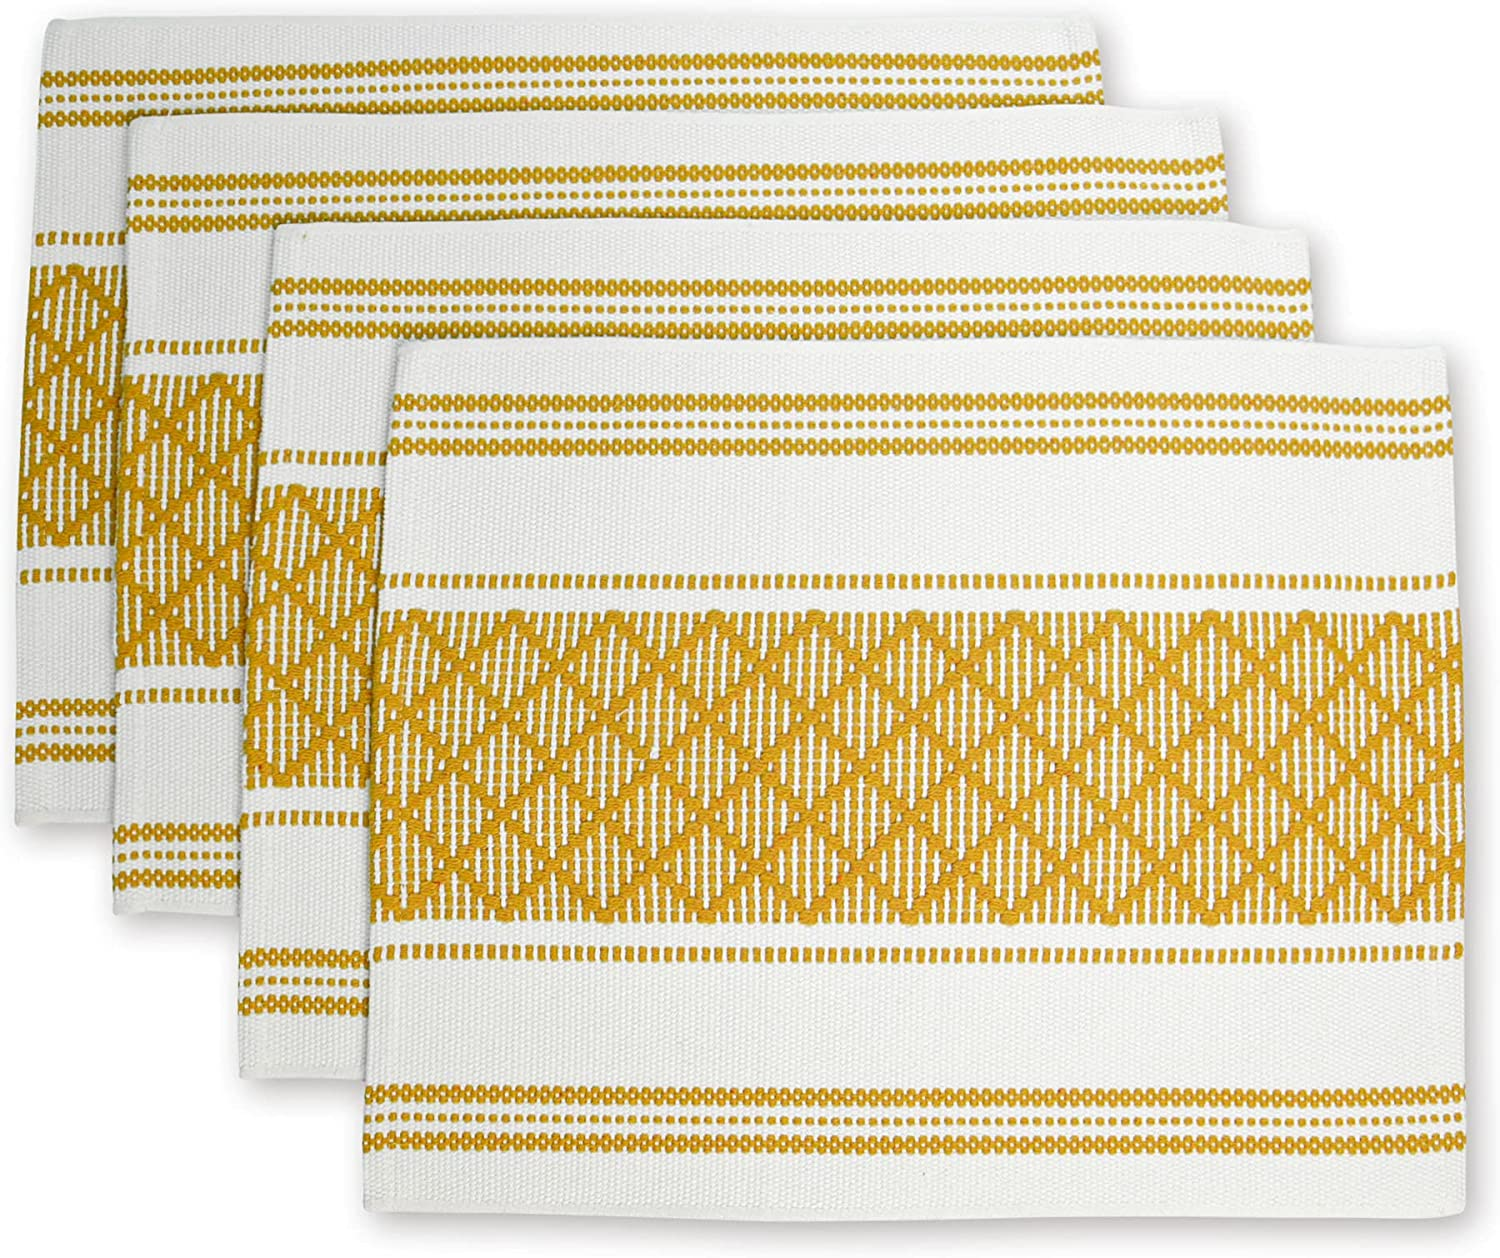 LEVIMETREE Boho Placemats Set of Popular overseas Heat-Resistant Special sale item Placema Woven 4